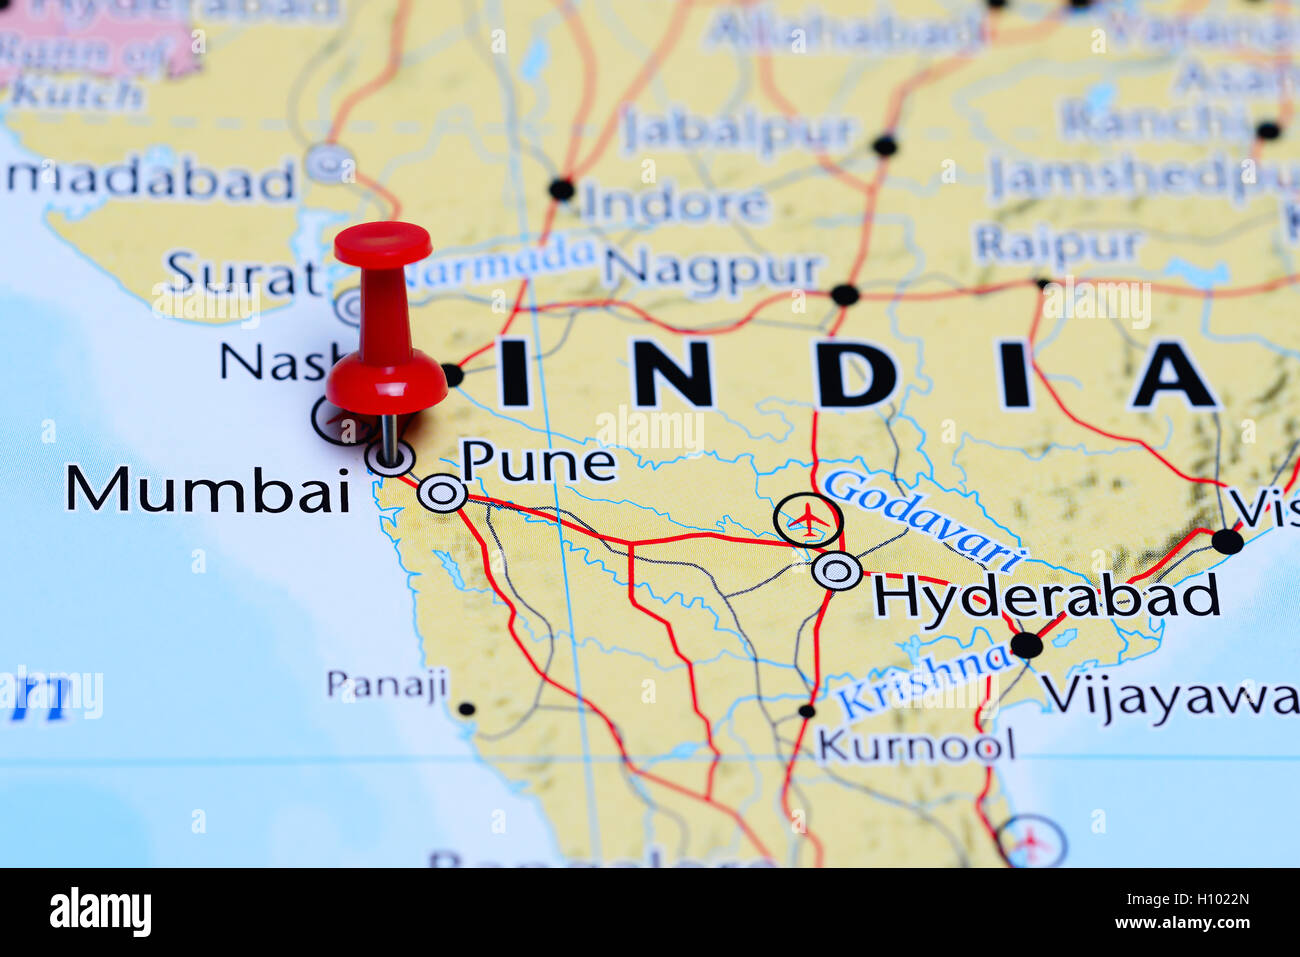 Mumbai In India Map Mumbai pinned on a map of India Stock Photo: 121088877   Alamy